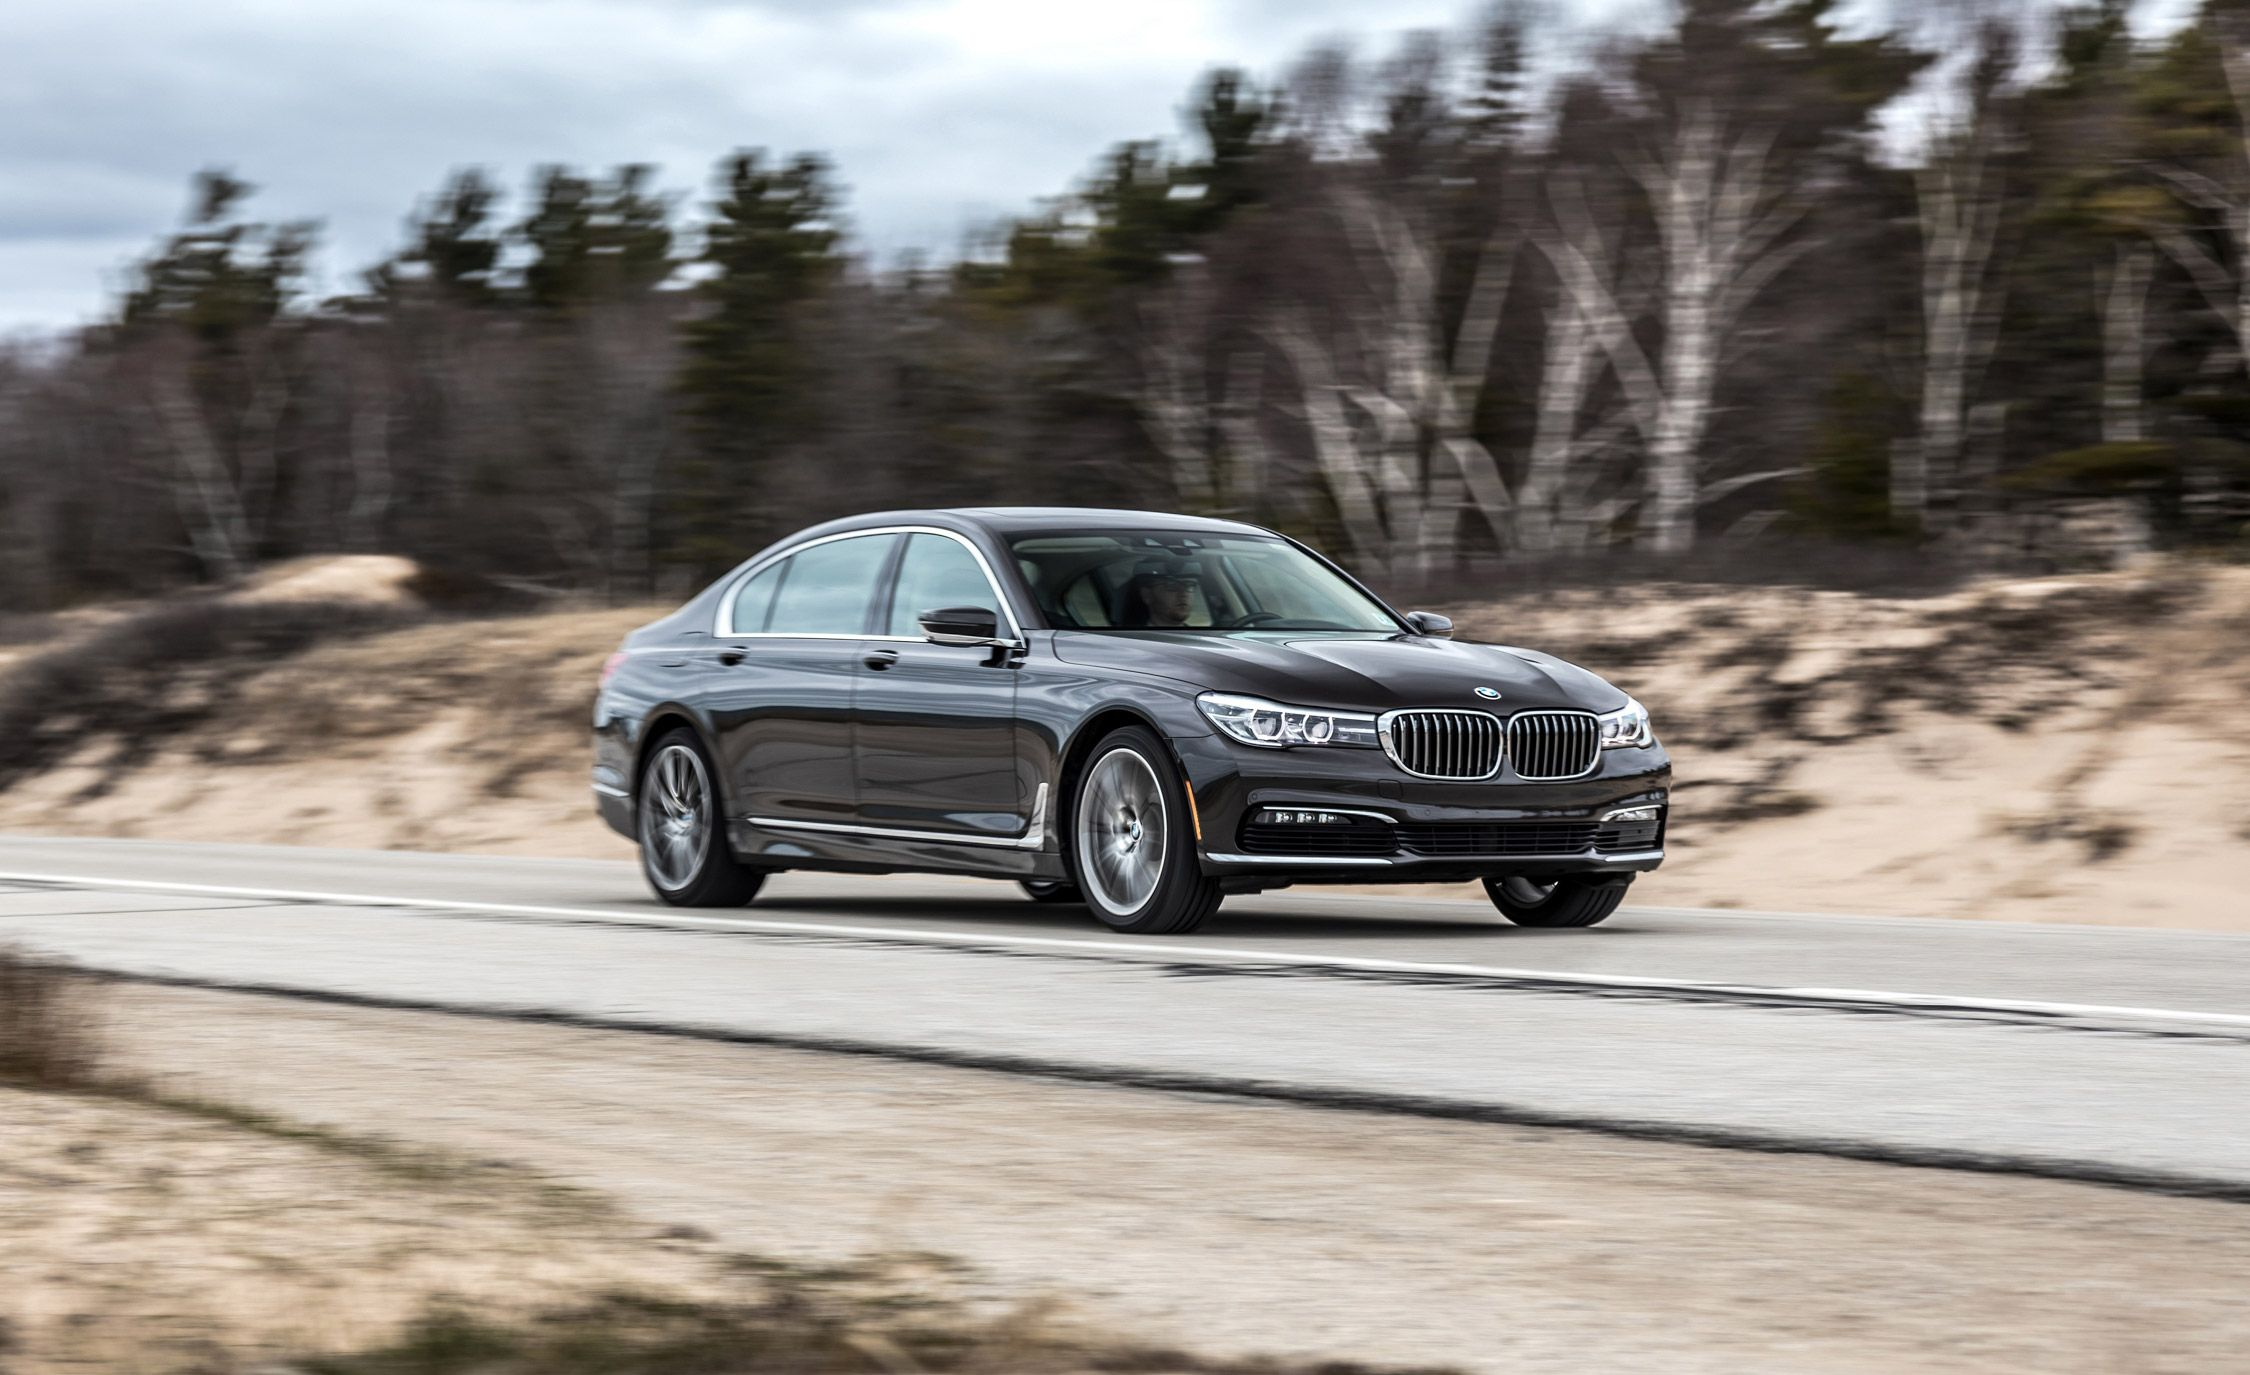 2016 bmw 740i long term test review car and driver in addition 2000 bmw 740il double din radio on bmw 750li fuse diagram [ 2250 x 1375 Pixel ]